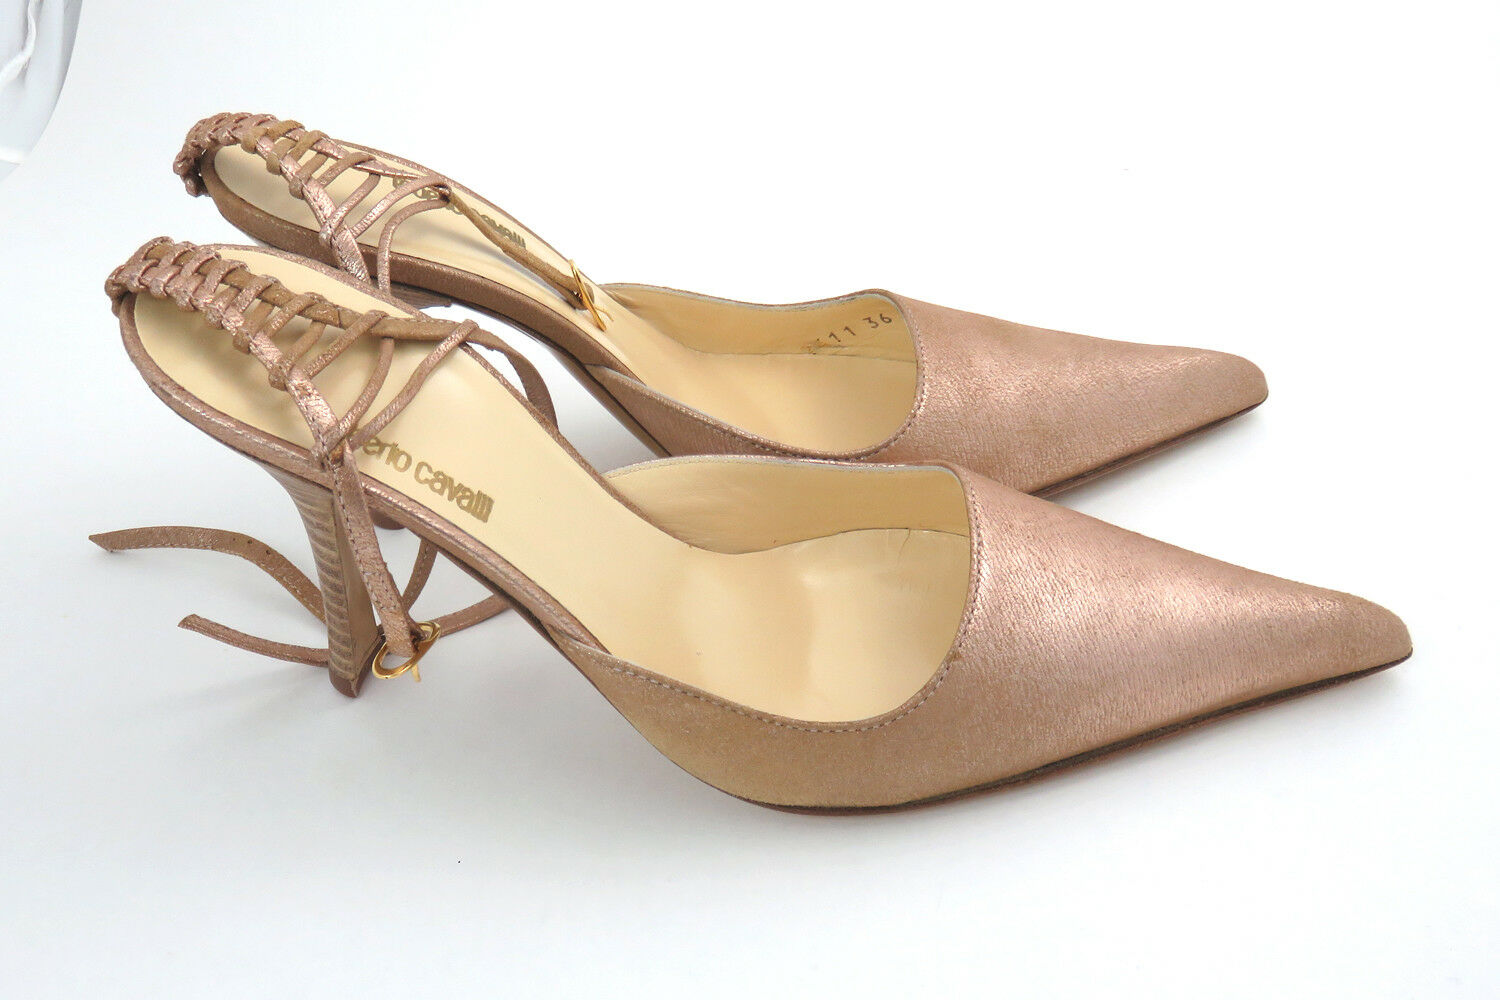 Roberto Cavalli Women High Heels Leather shoes Size 36 US 6 - pink gold